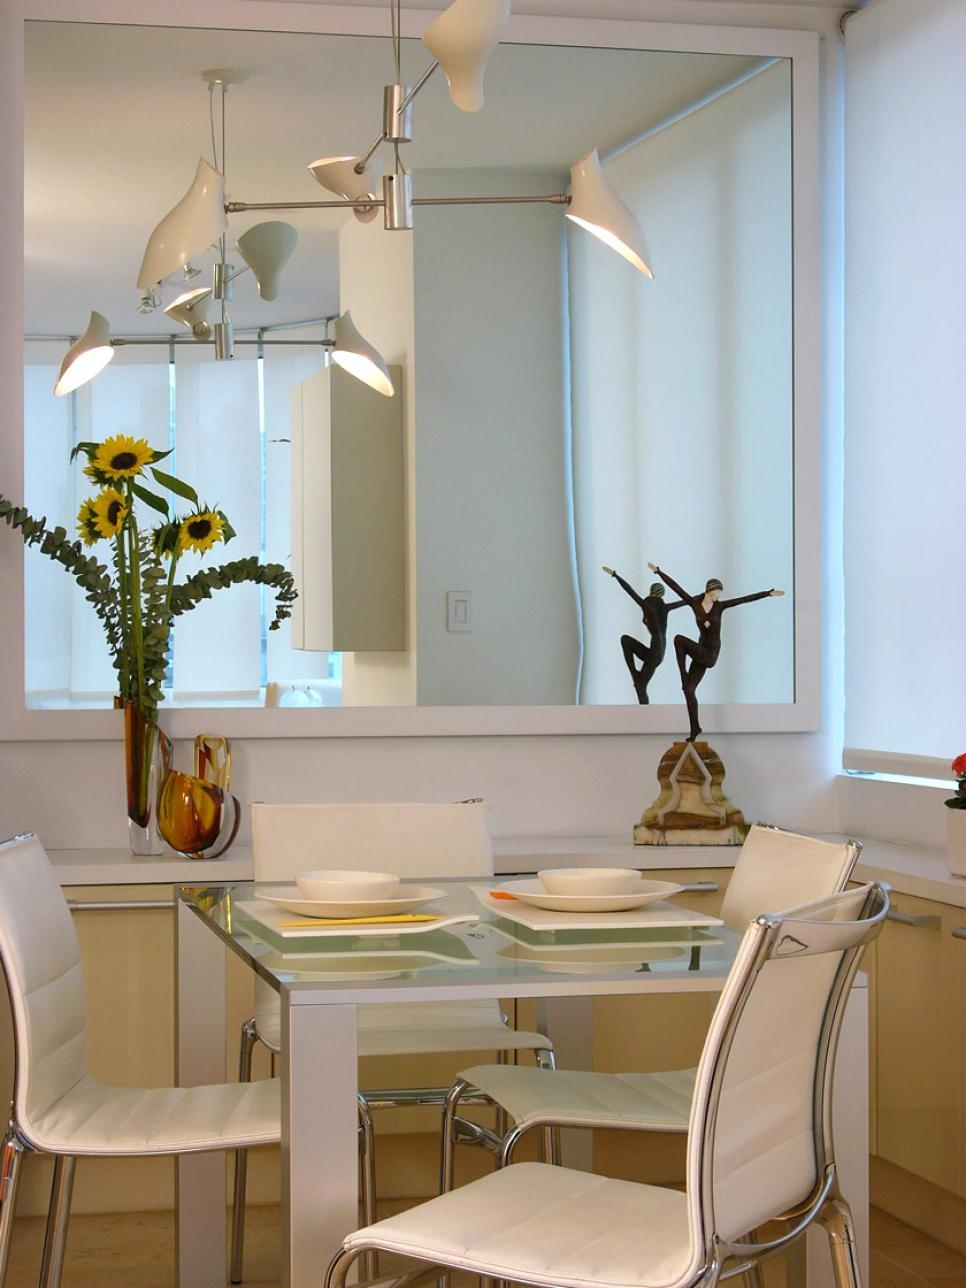 Decorating With Mirrors Hgtv Throughout Decorative Table Mirrors (Image 3 of 15)